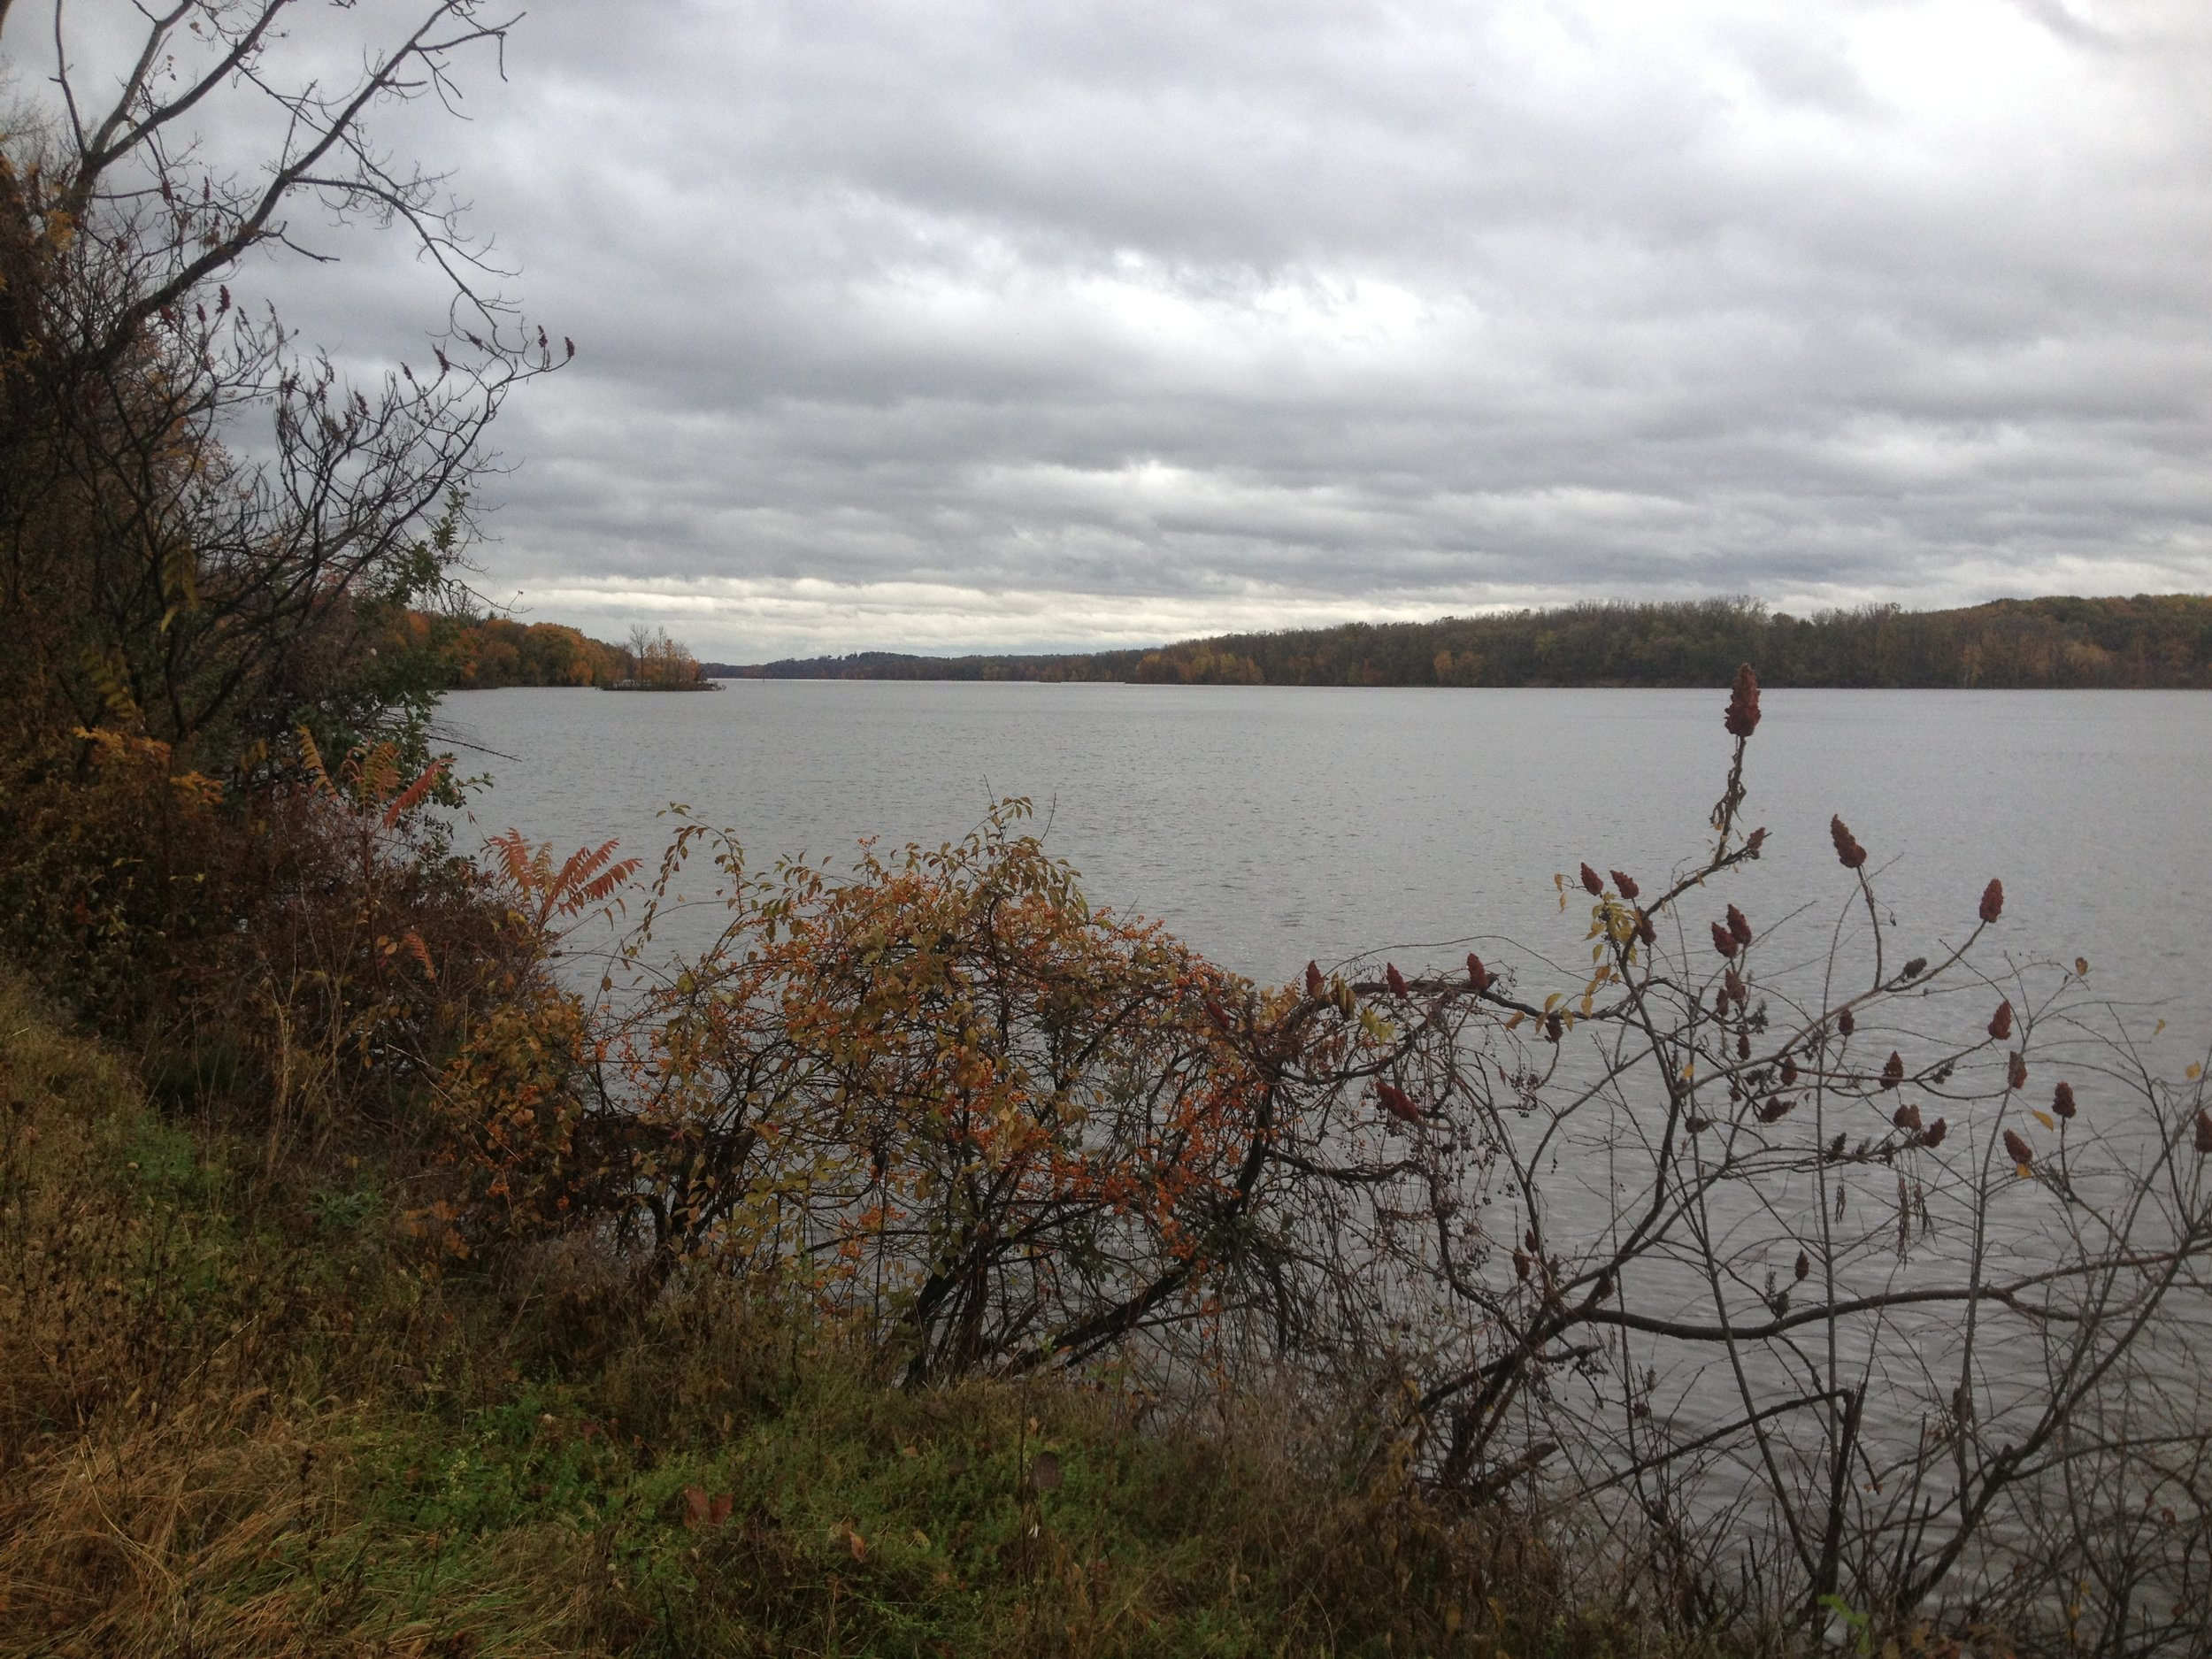 The Hudson River estuary between Coxsackie and Athens, looking up stream on an autumn day.